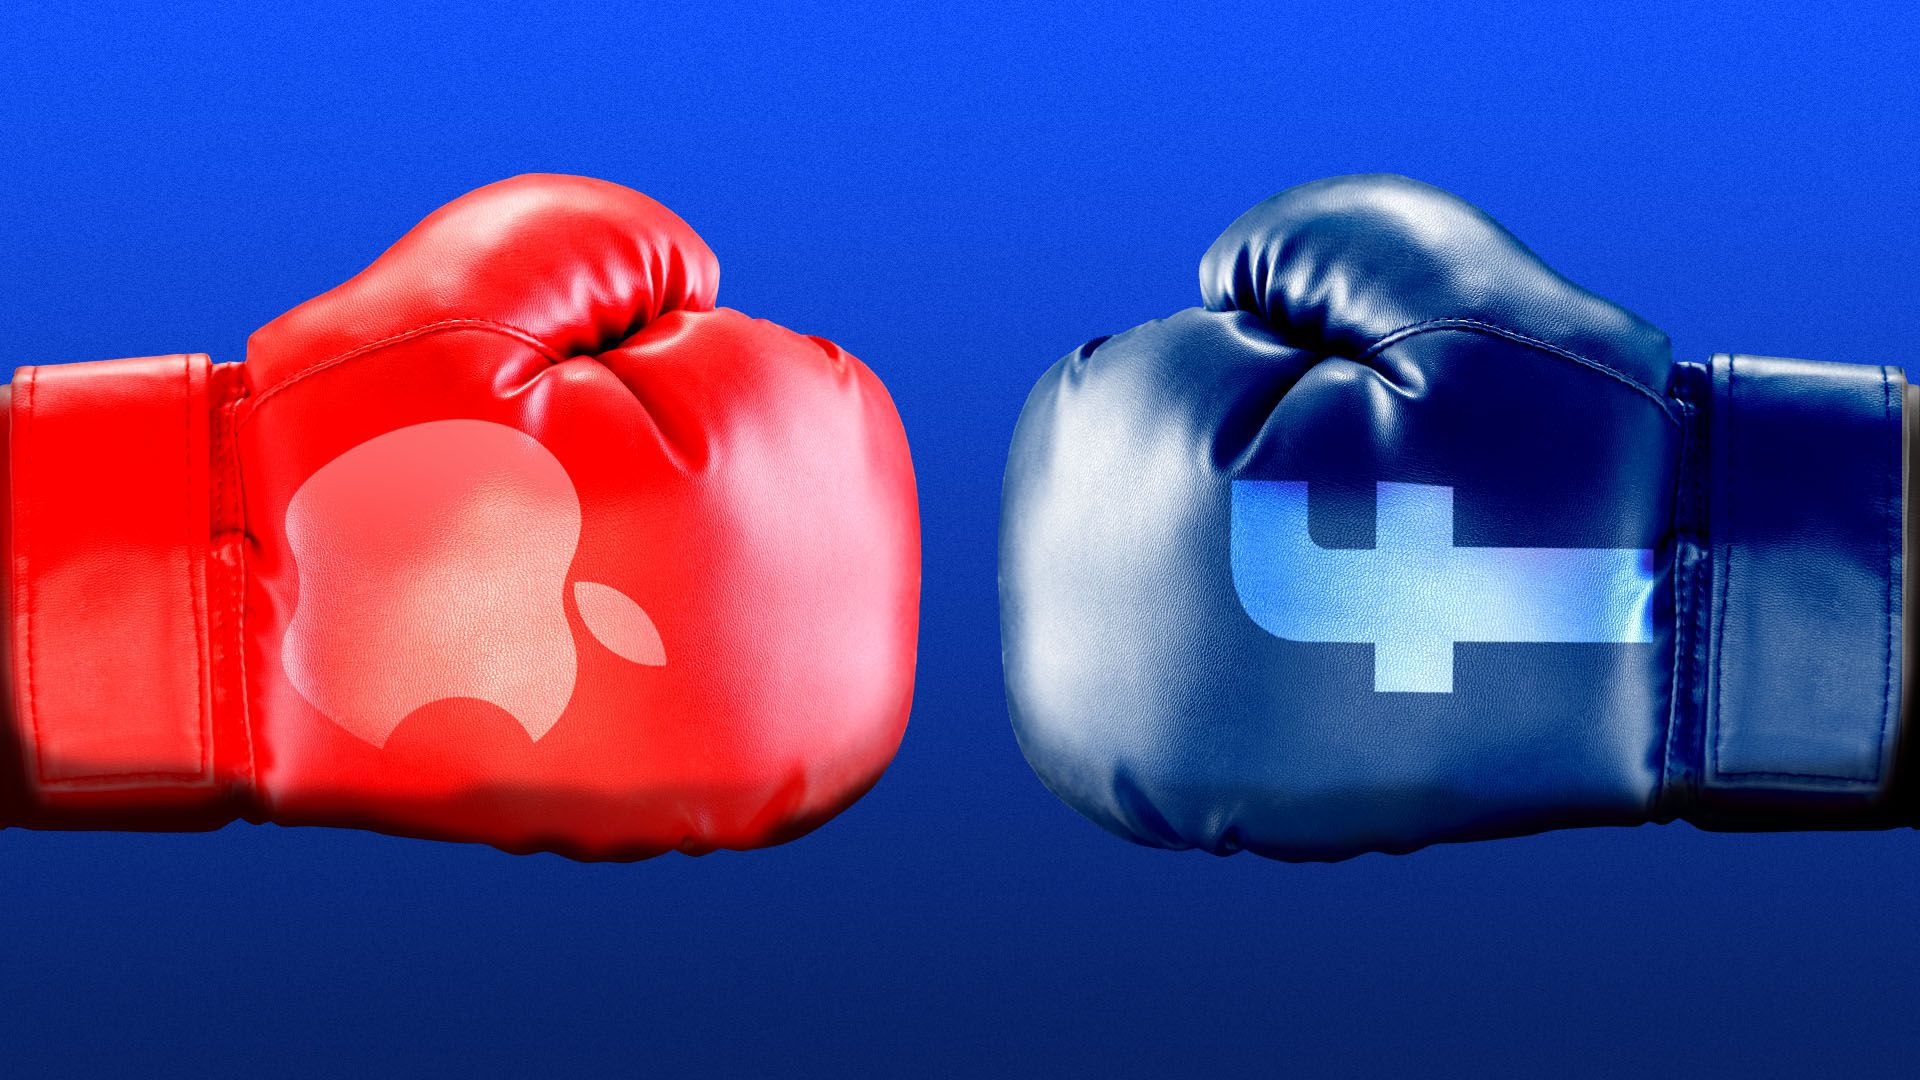 How Apple and Facebook's Feud Can Impact Advertising